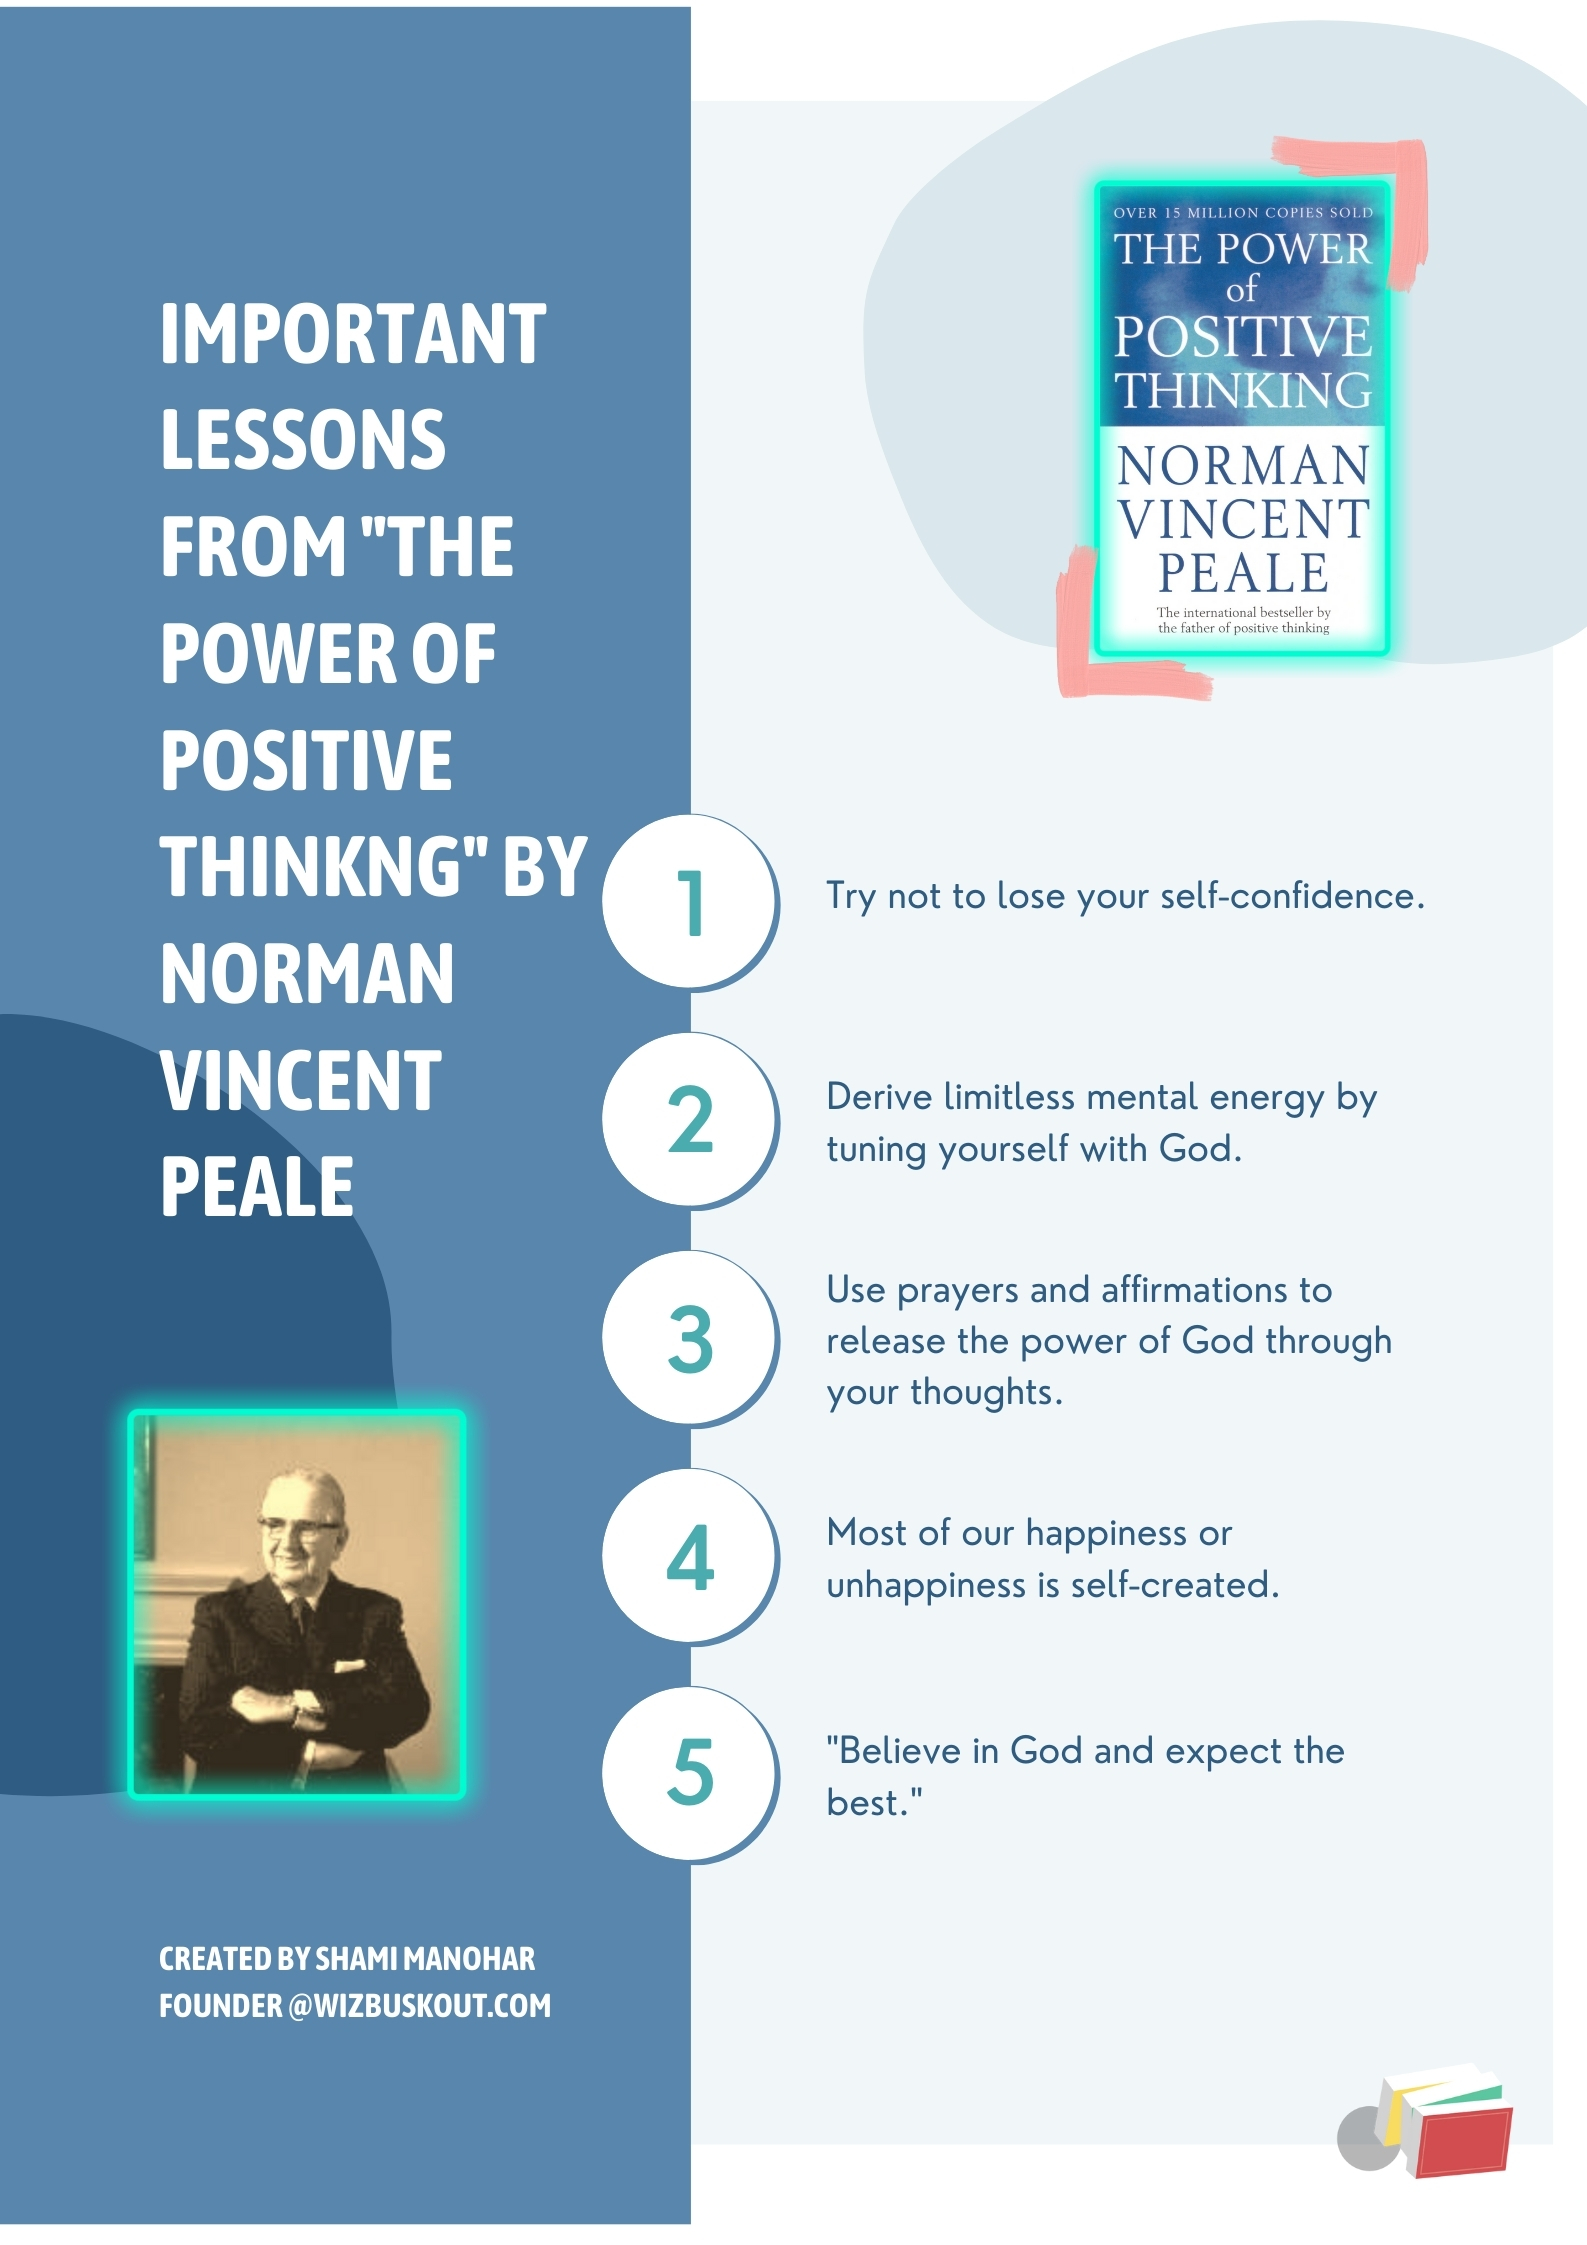 The Power Of Positive Thinking Summary & Infographic